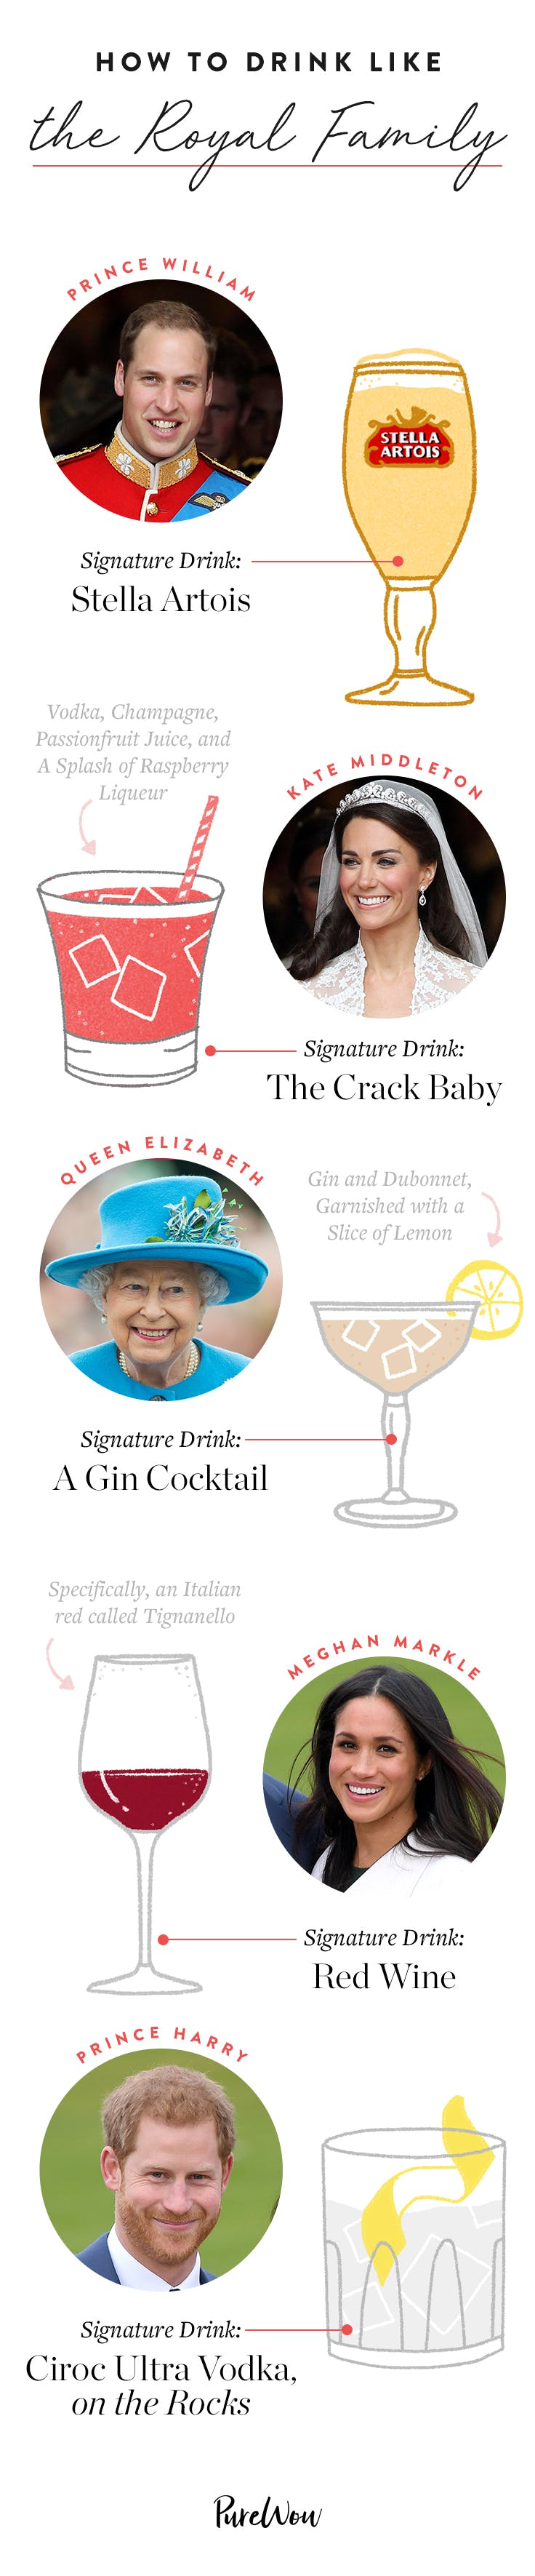 Royal Drink Infographic with header